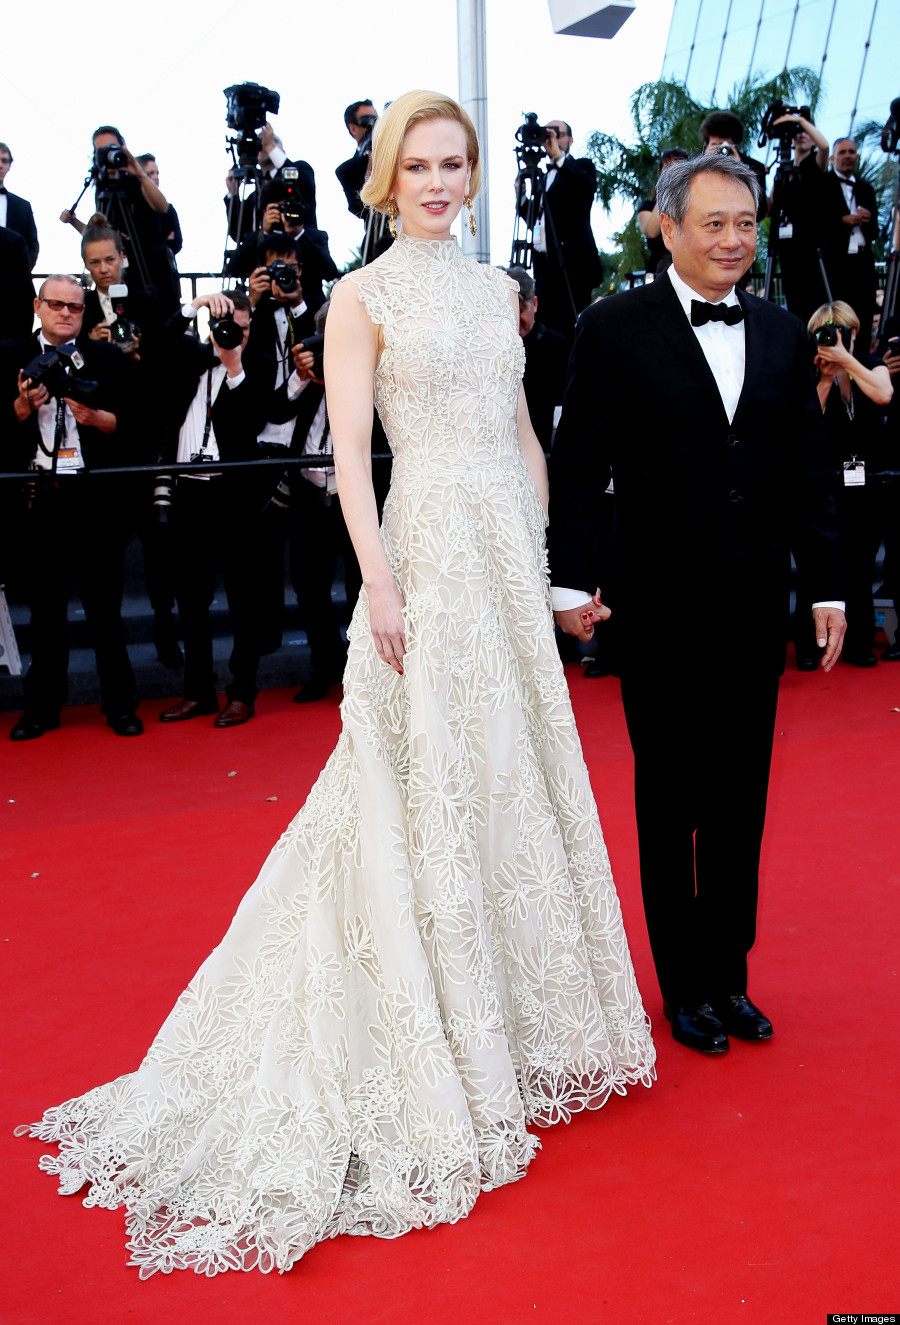 Nicole Kidman\'s Cannes 2013 Dress Was Supposed To Be Anne Hathaway\'s ...